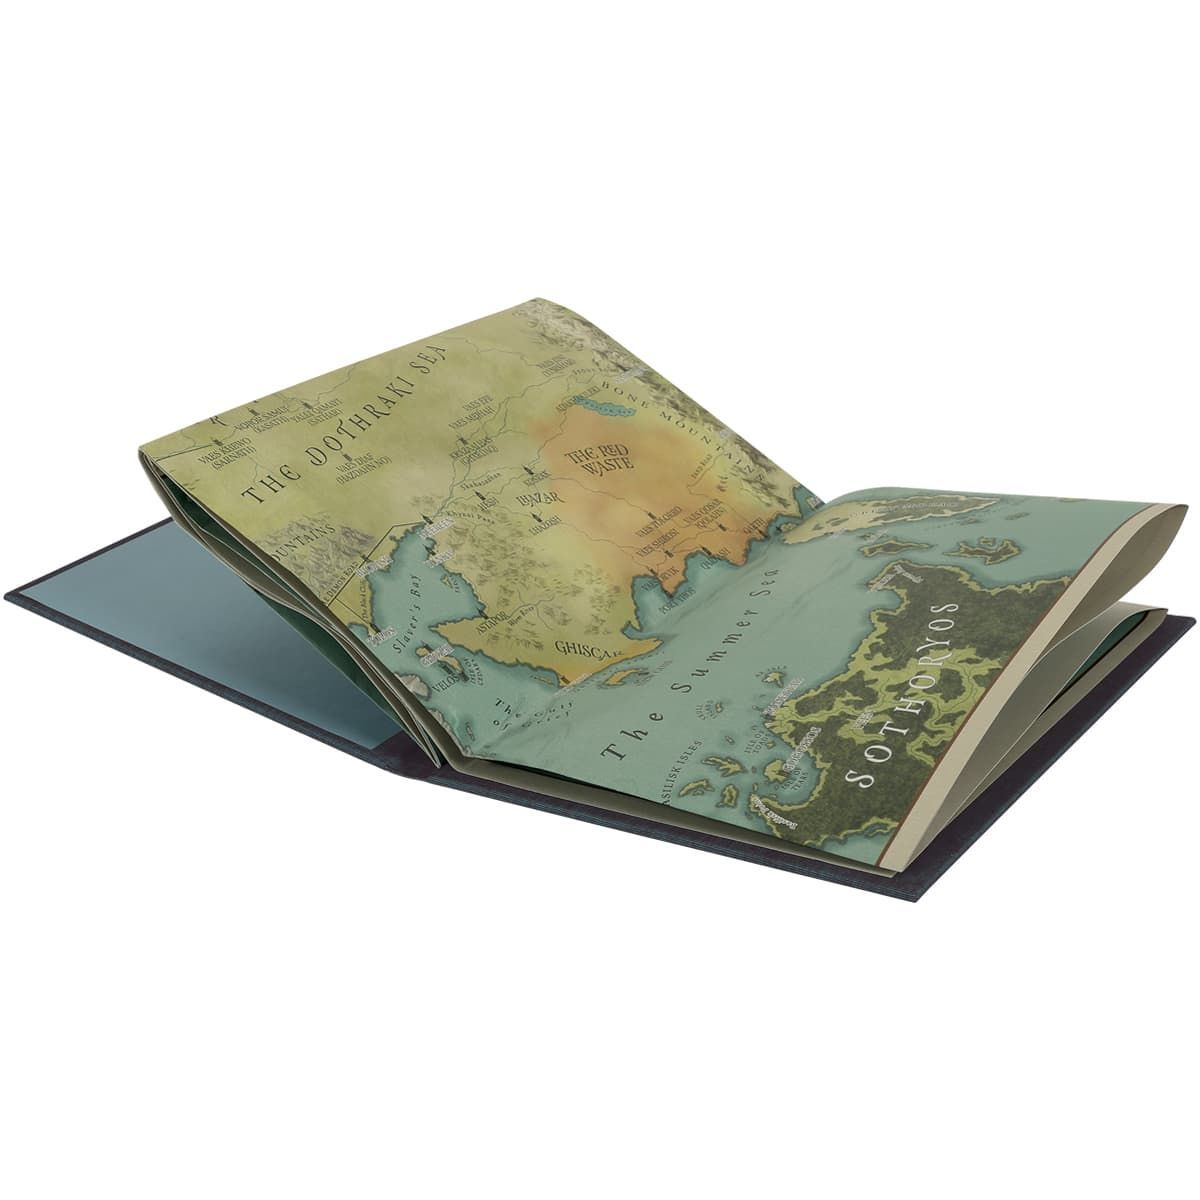 <p>Also included in this spectacular set is a colour map of The Known World, printed as a separate volume which folds out to reveal the full splendour of George R. R. Martin's remarkable creation. (Photo: Folio Society){&nbsp;}</p>